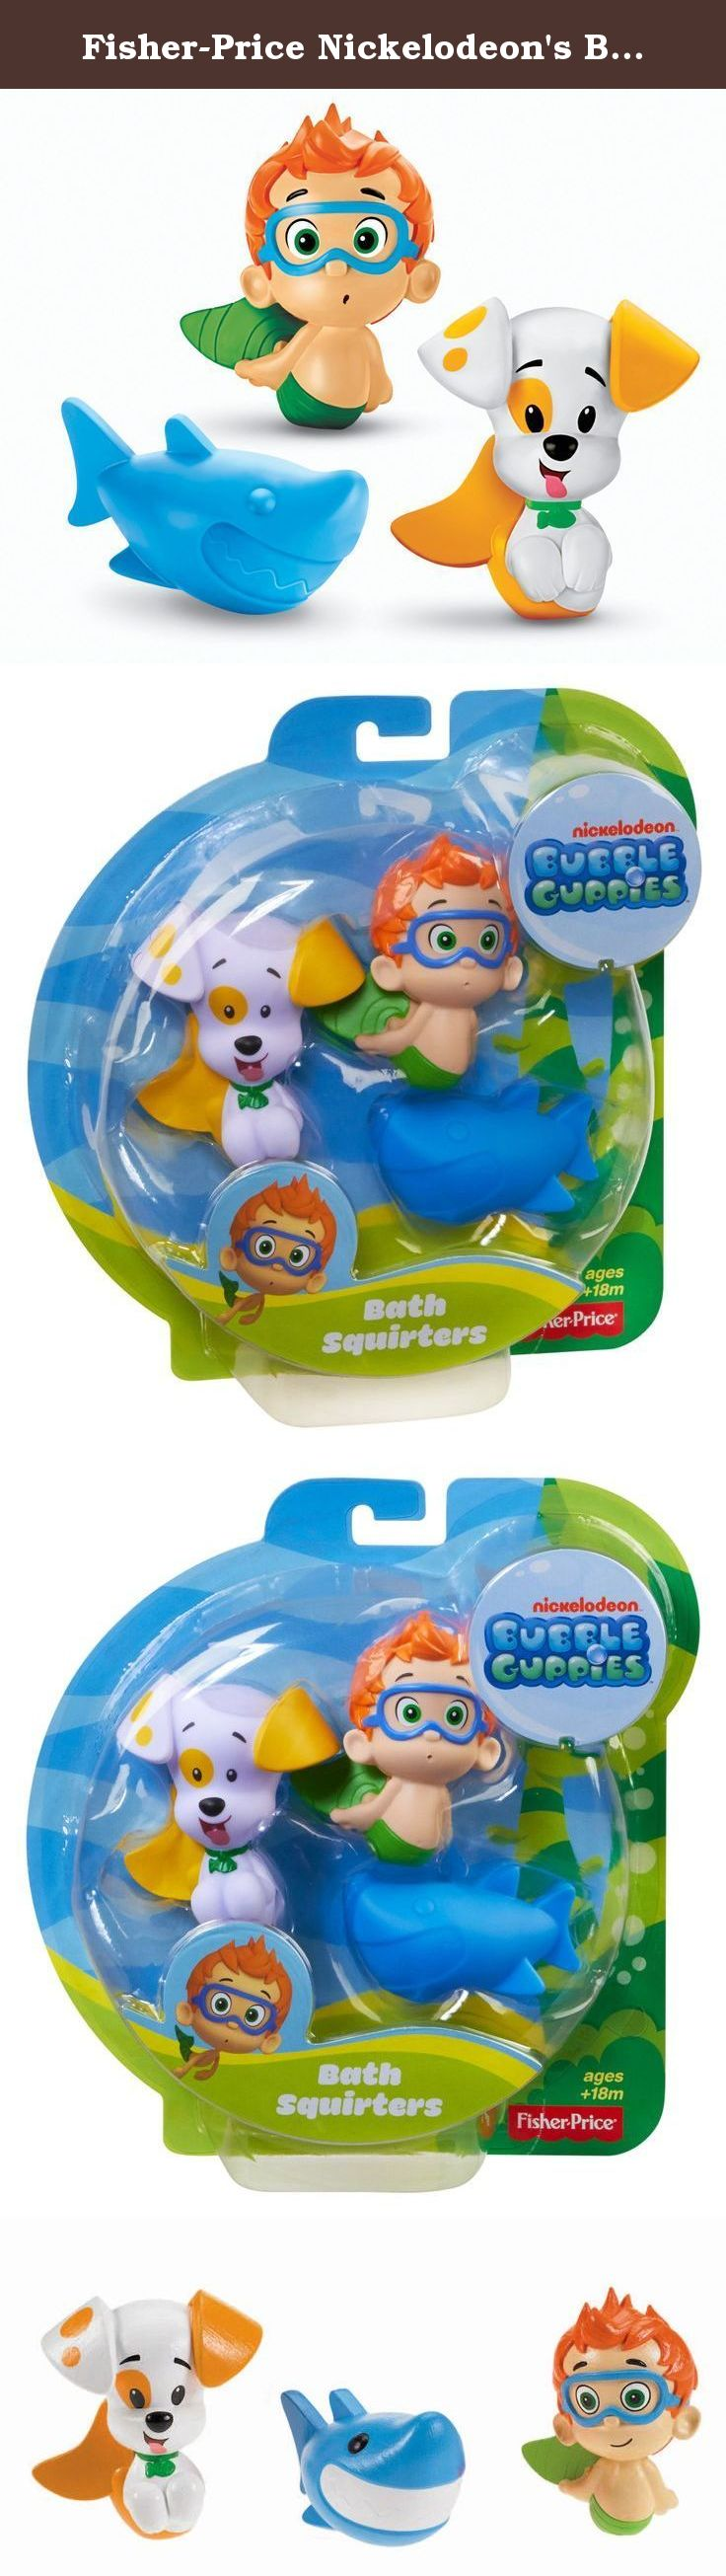 Fisher-Price Nickelodeon\'s Bubble Guppies Bath Squirters: Nonny ...